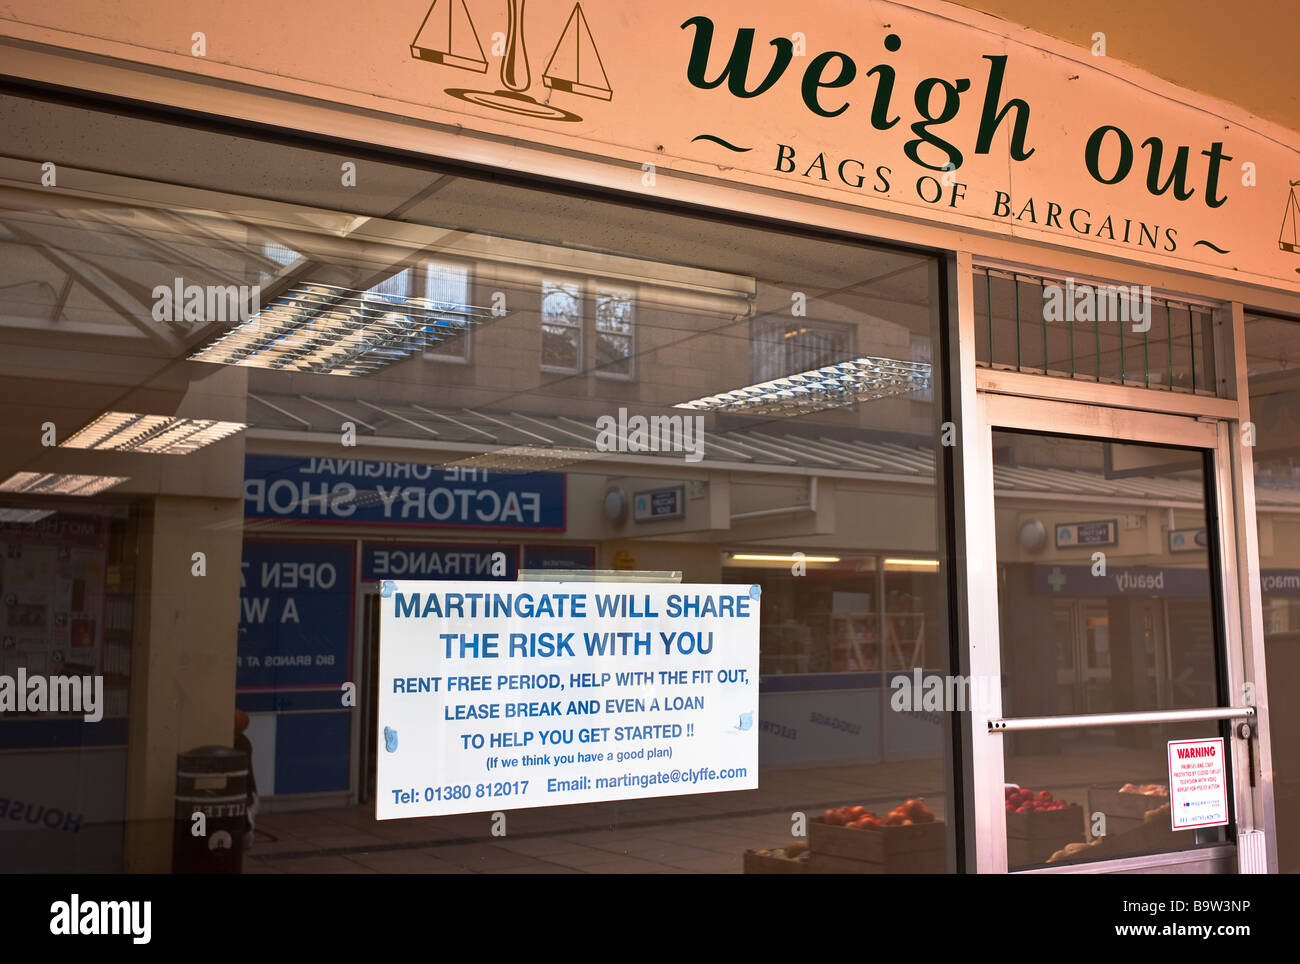 Empty shop with notice in window encouraging new business in Corsham Wiltshire - Stock Image